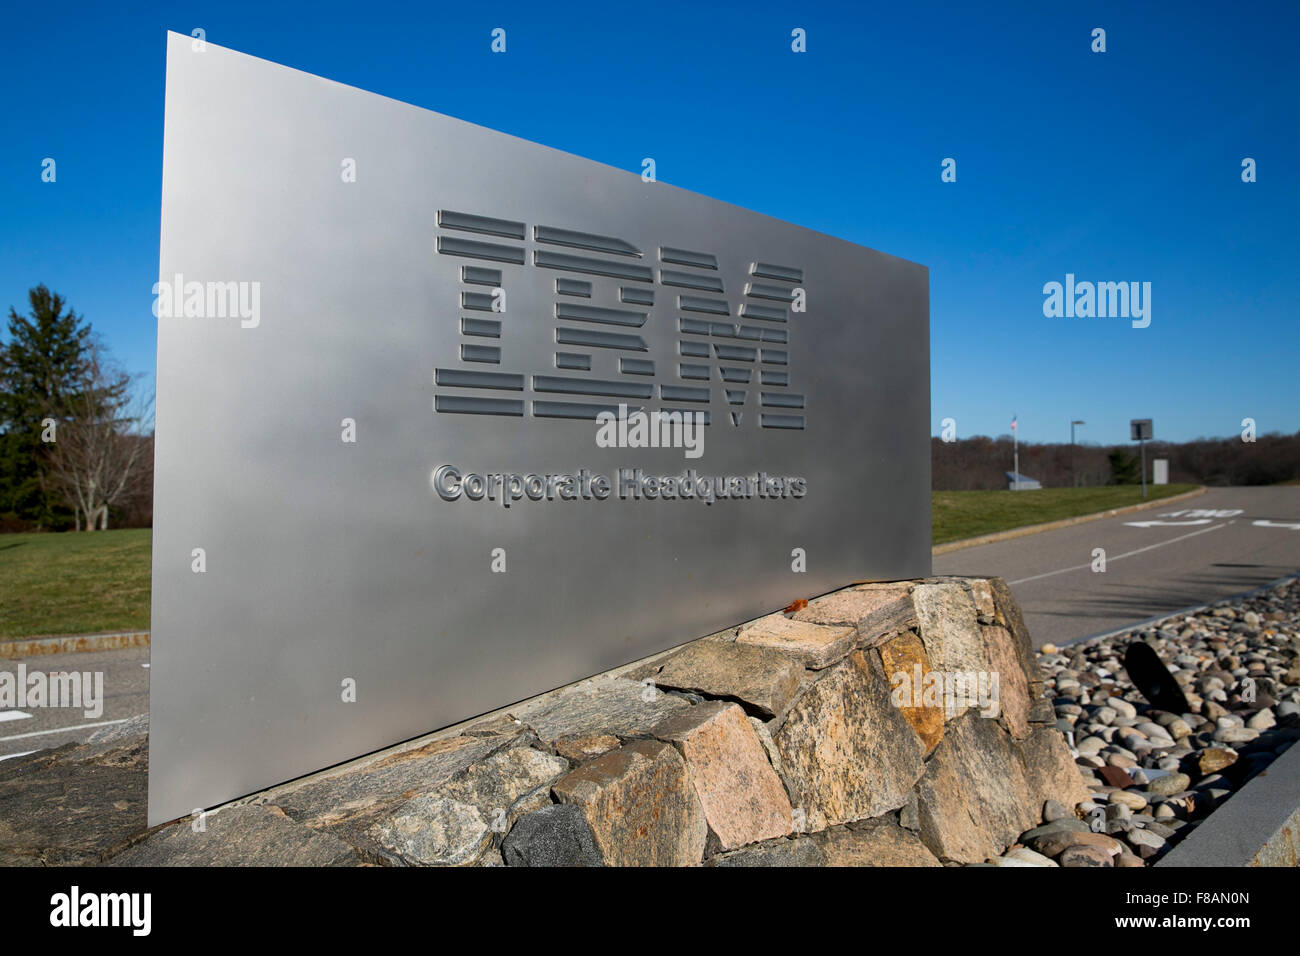 A logo sign outside of the headquarters of IBM in Armonk, New York on November 21, 2015. - Stock Image